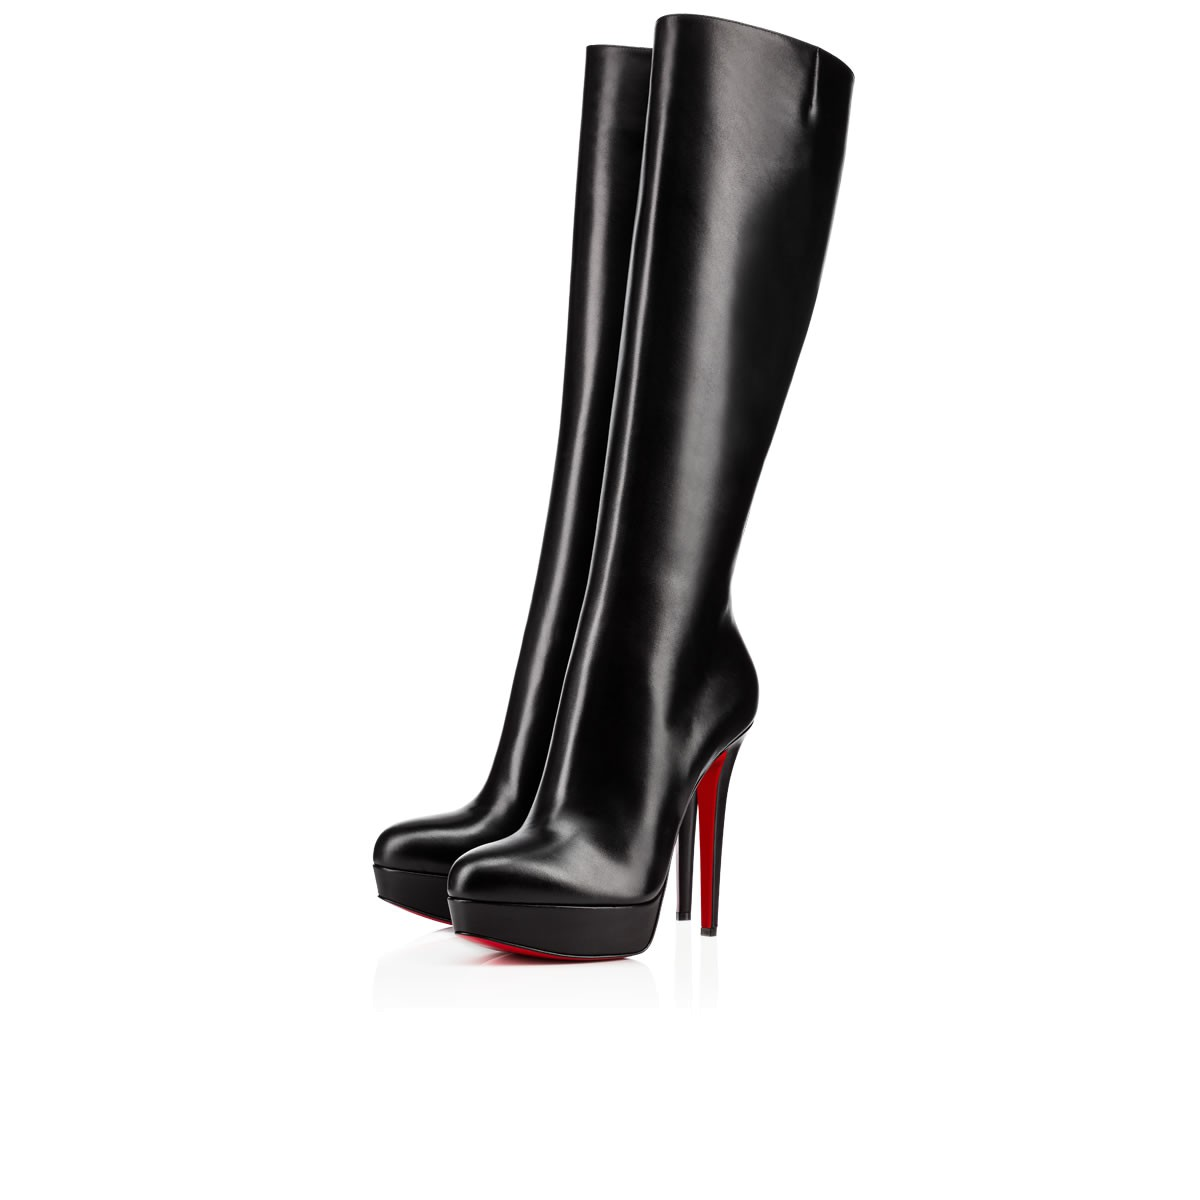 Bianca Botta 140 Black Leather Women Shoes Christian Louboutin